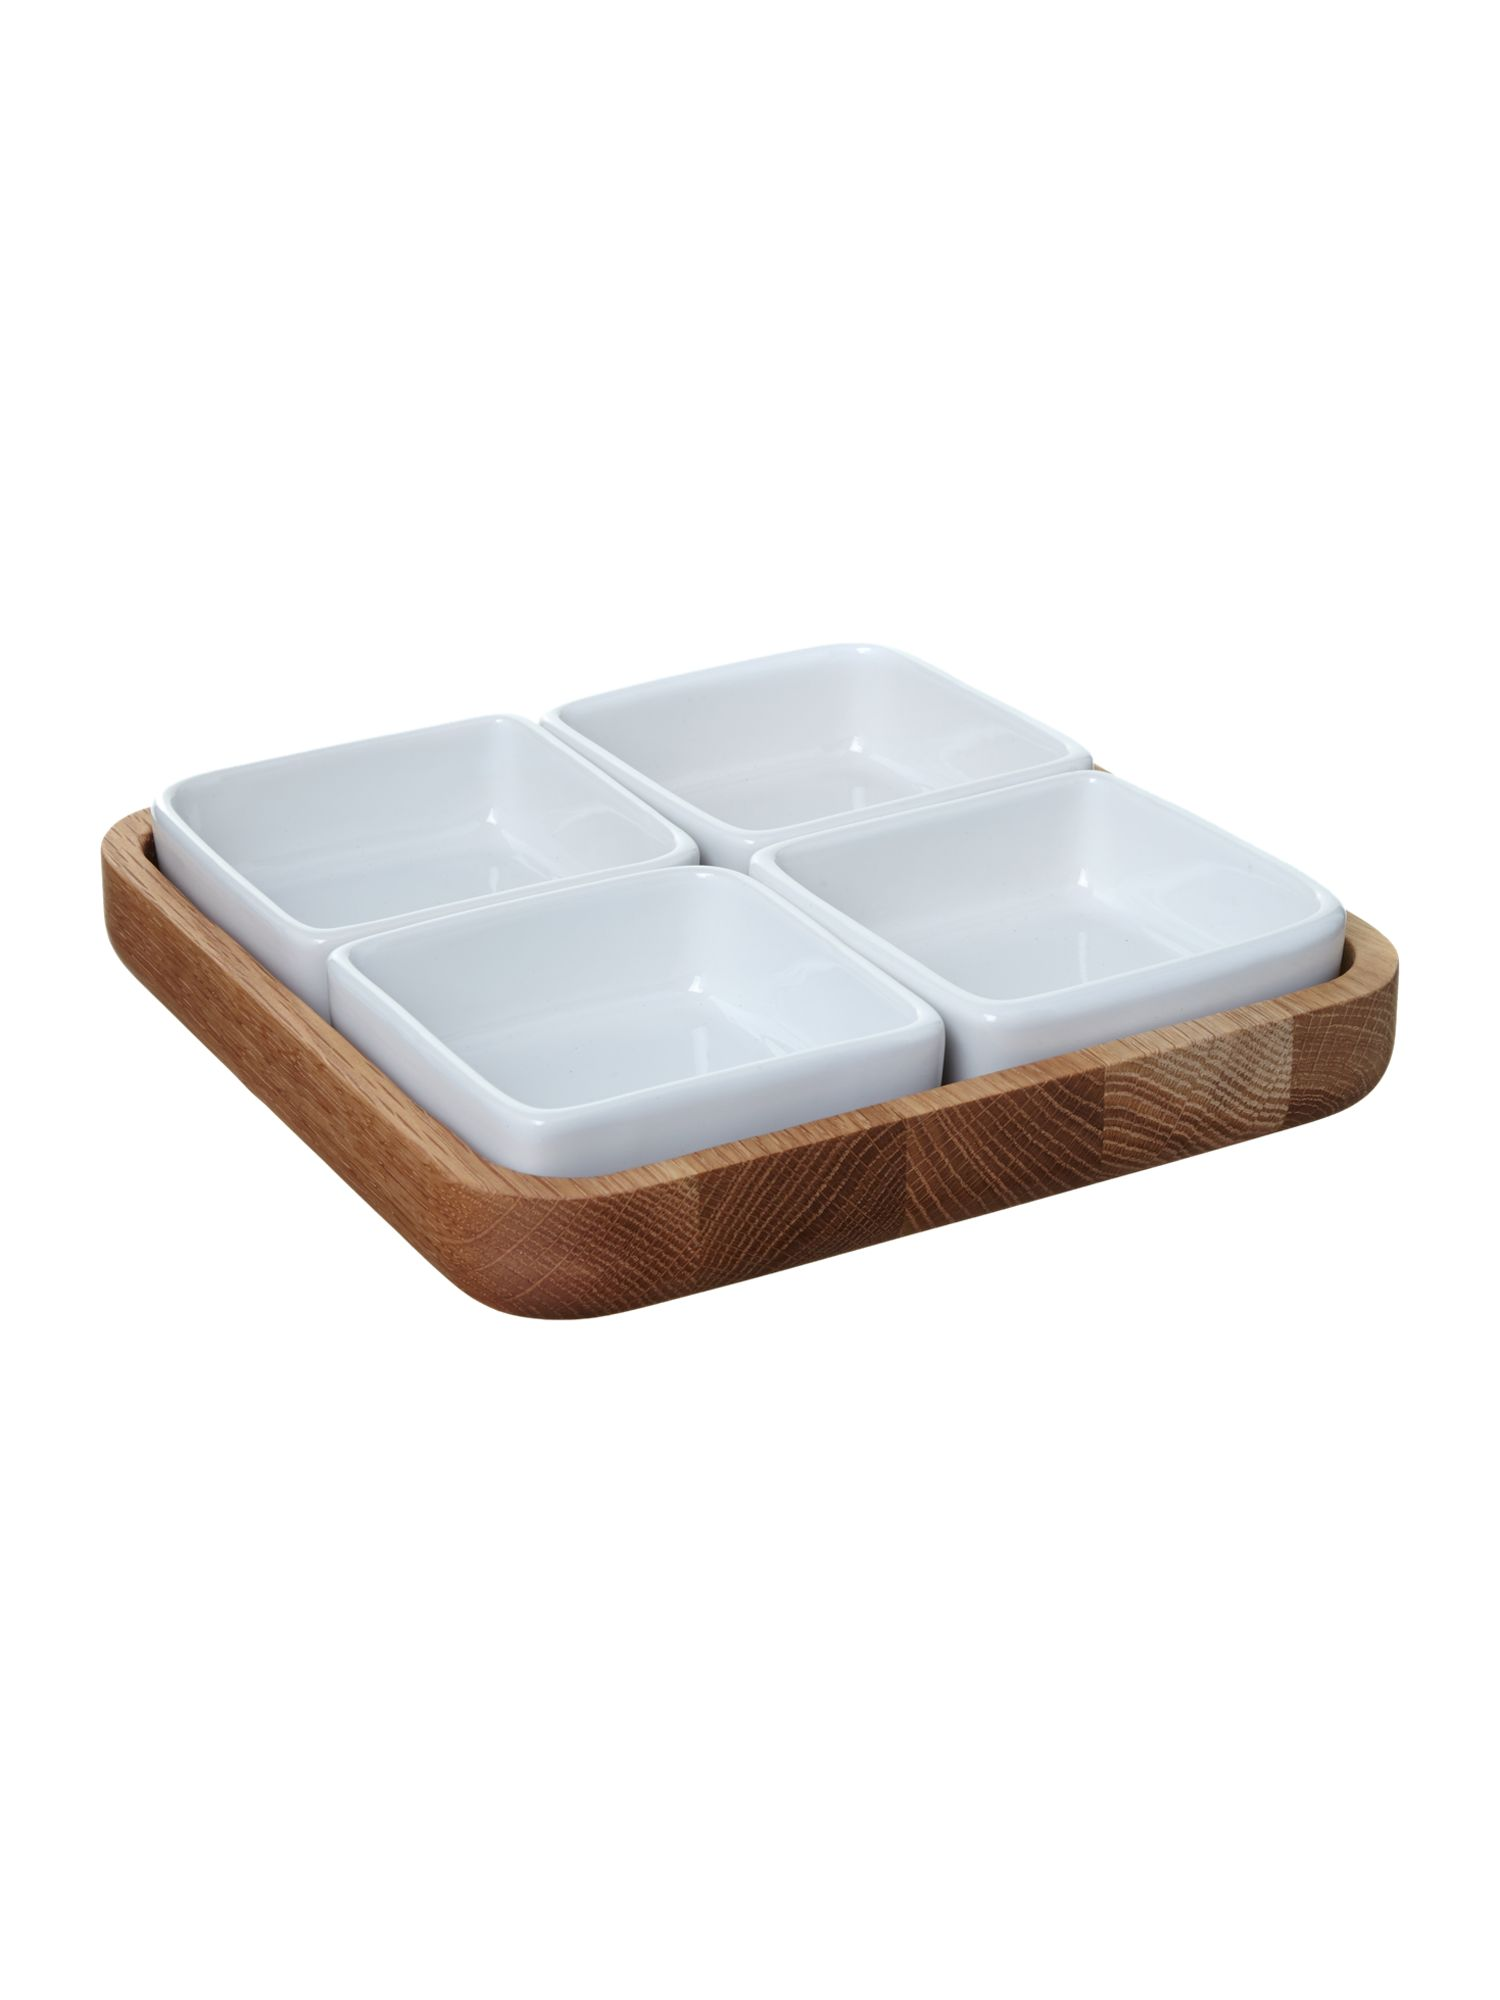 Oak serve tray with 4 dipping bowls